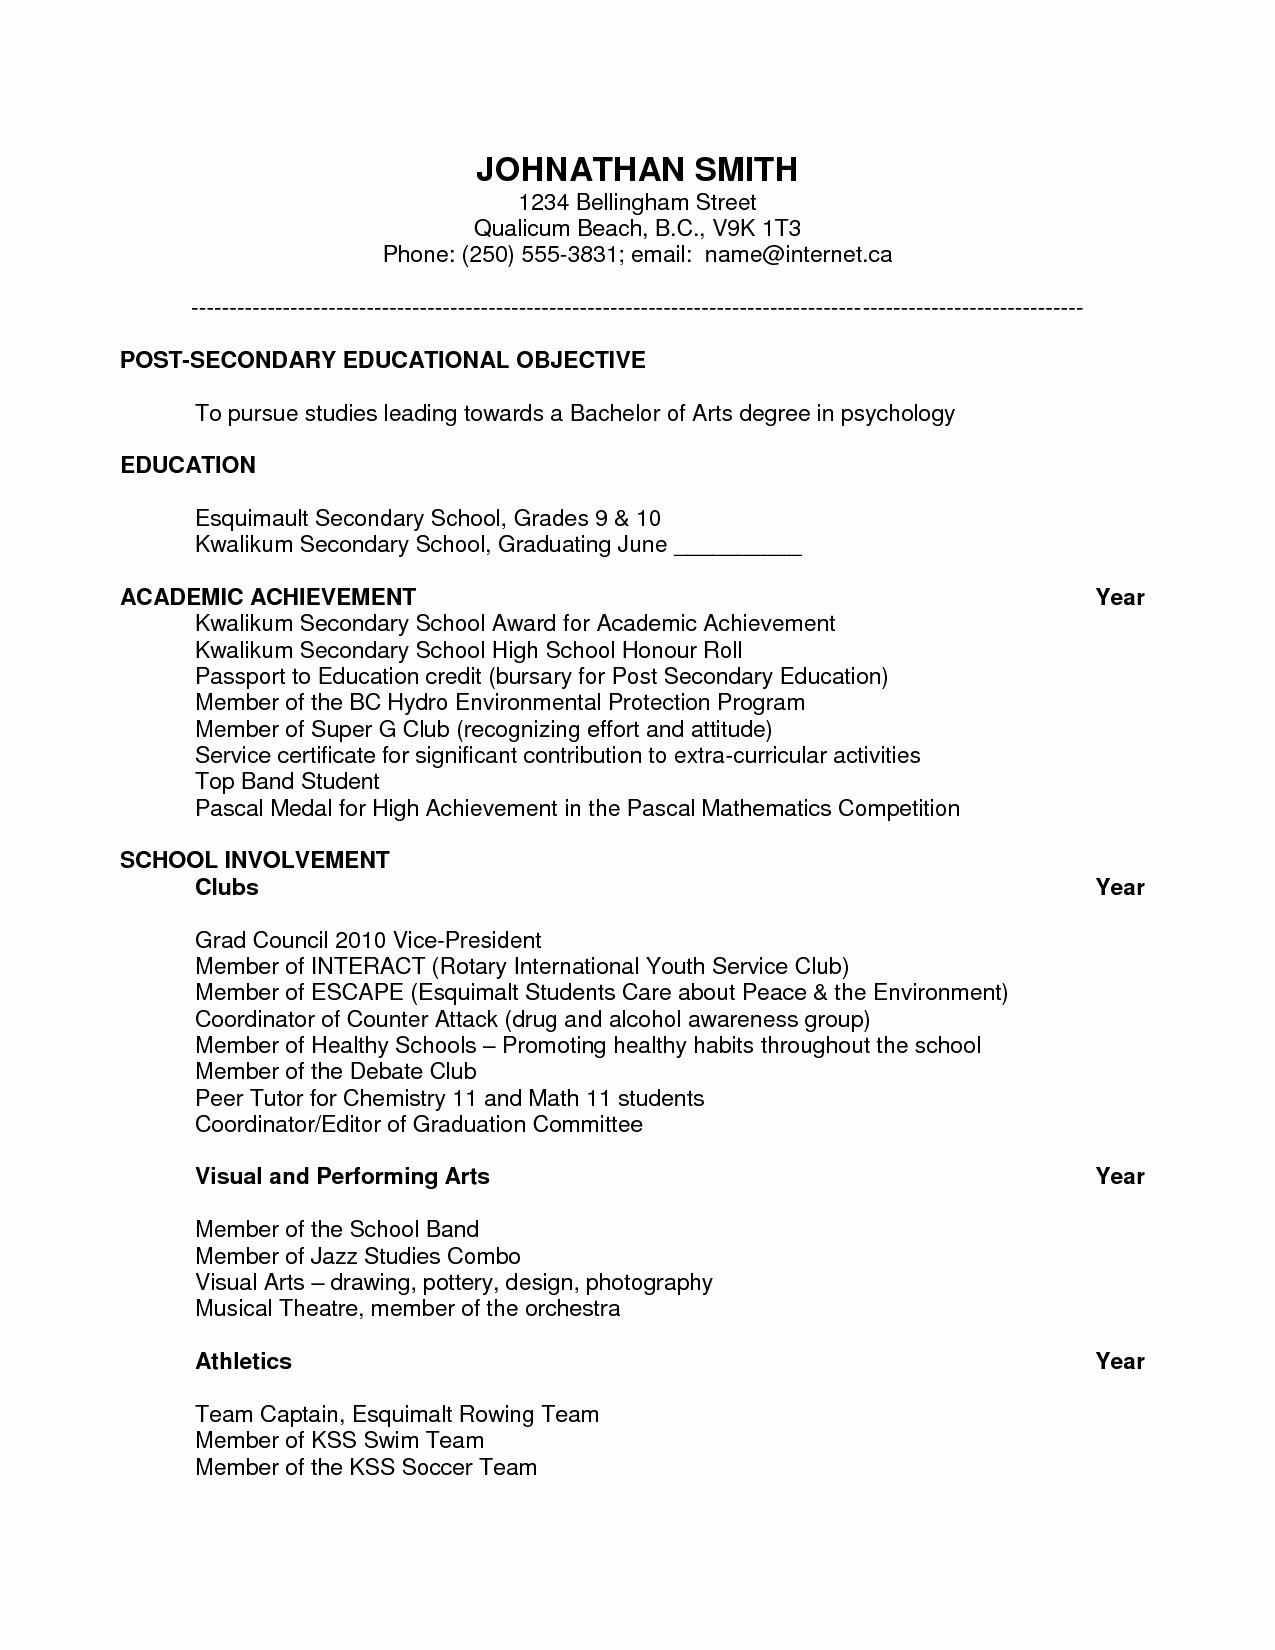 Extra Curricular Activities In Resume - Extra Curricular Activities In Resume Inspirational Co Curricular